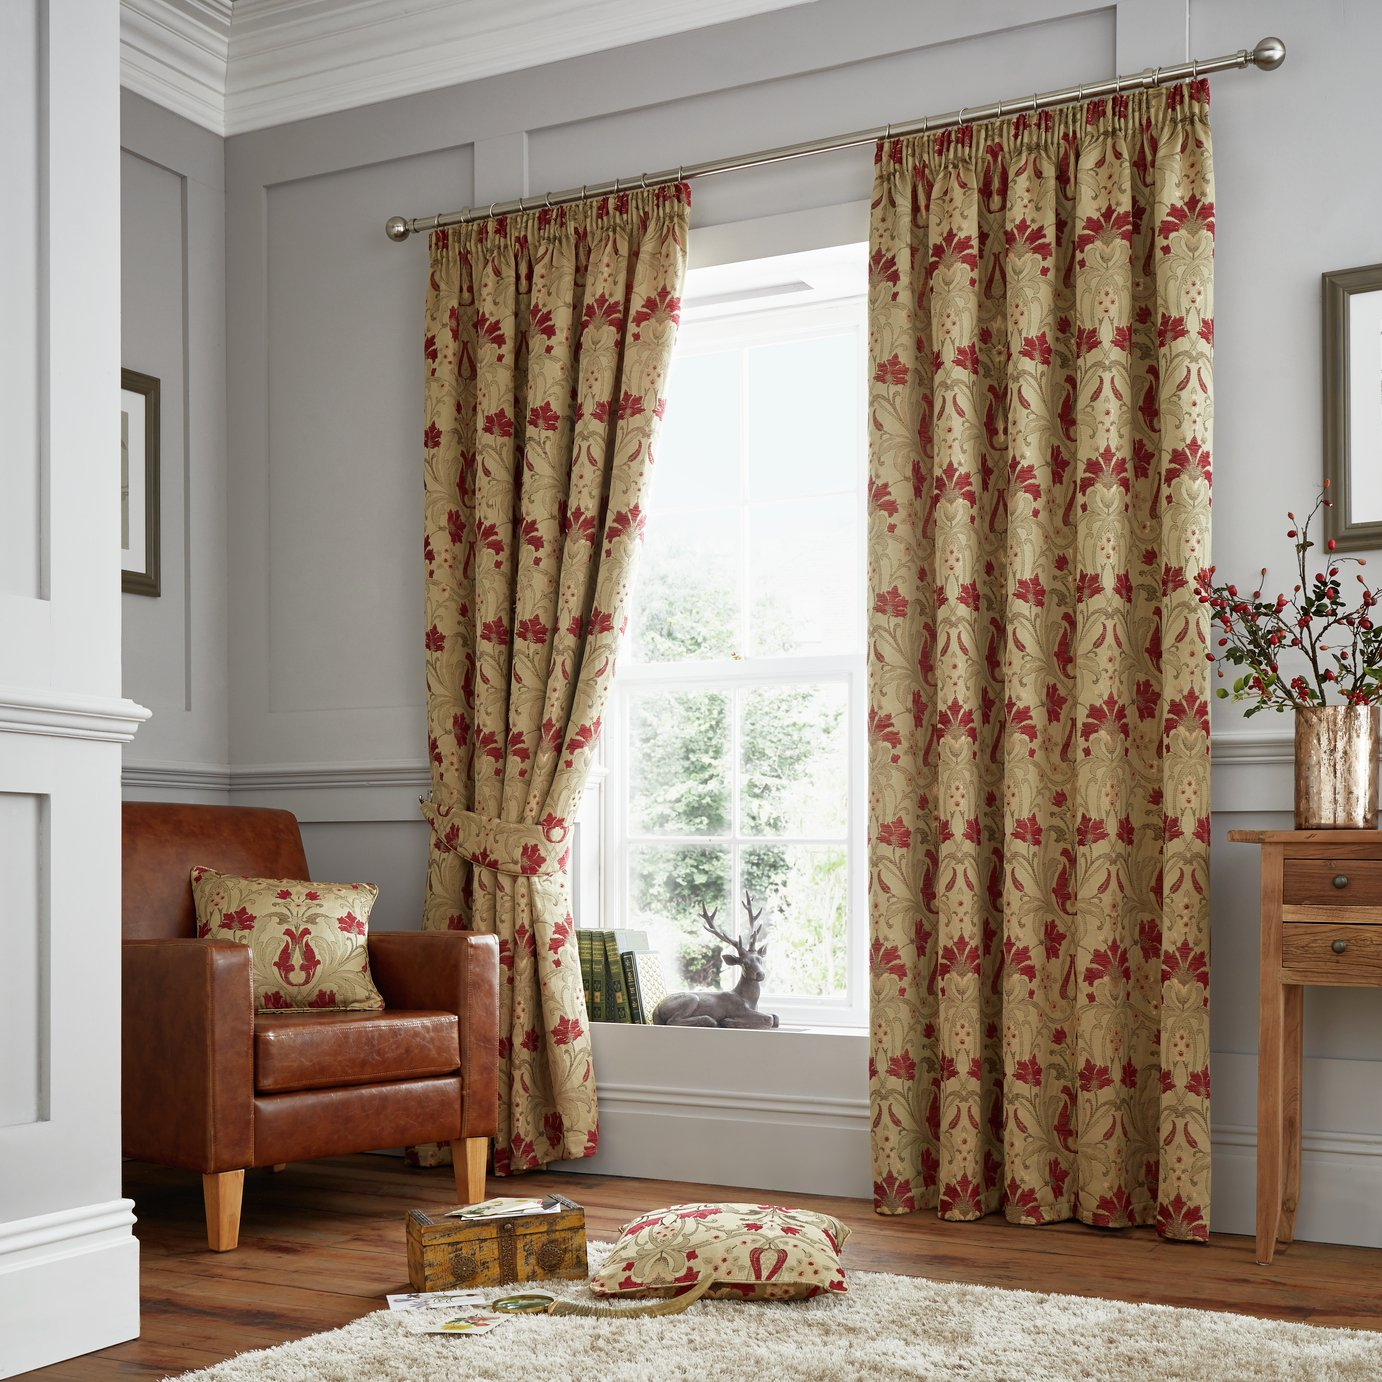 Image of Curtina Burford Curtains - 168x183cm - Red and Gold